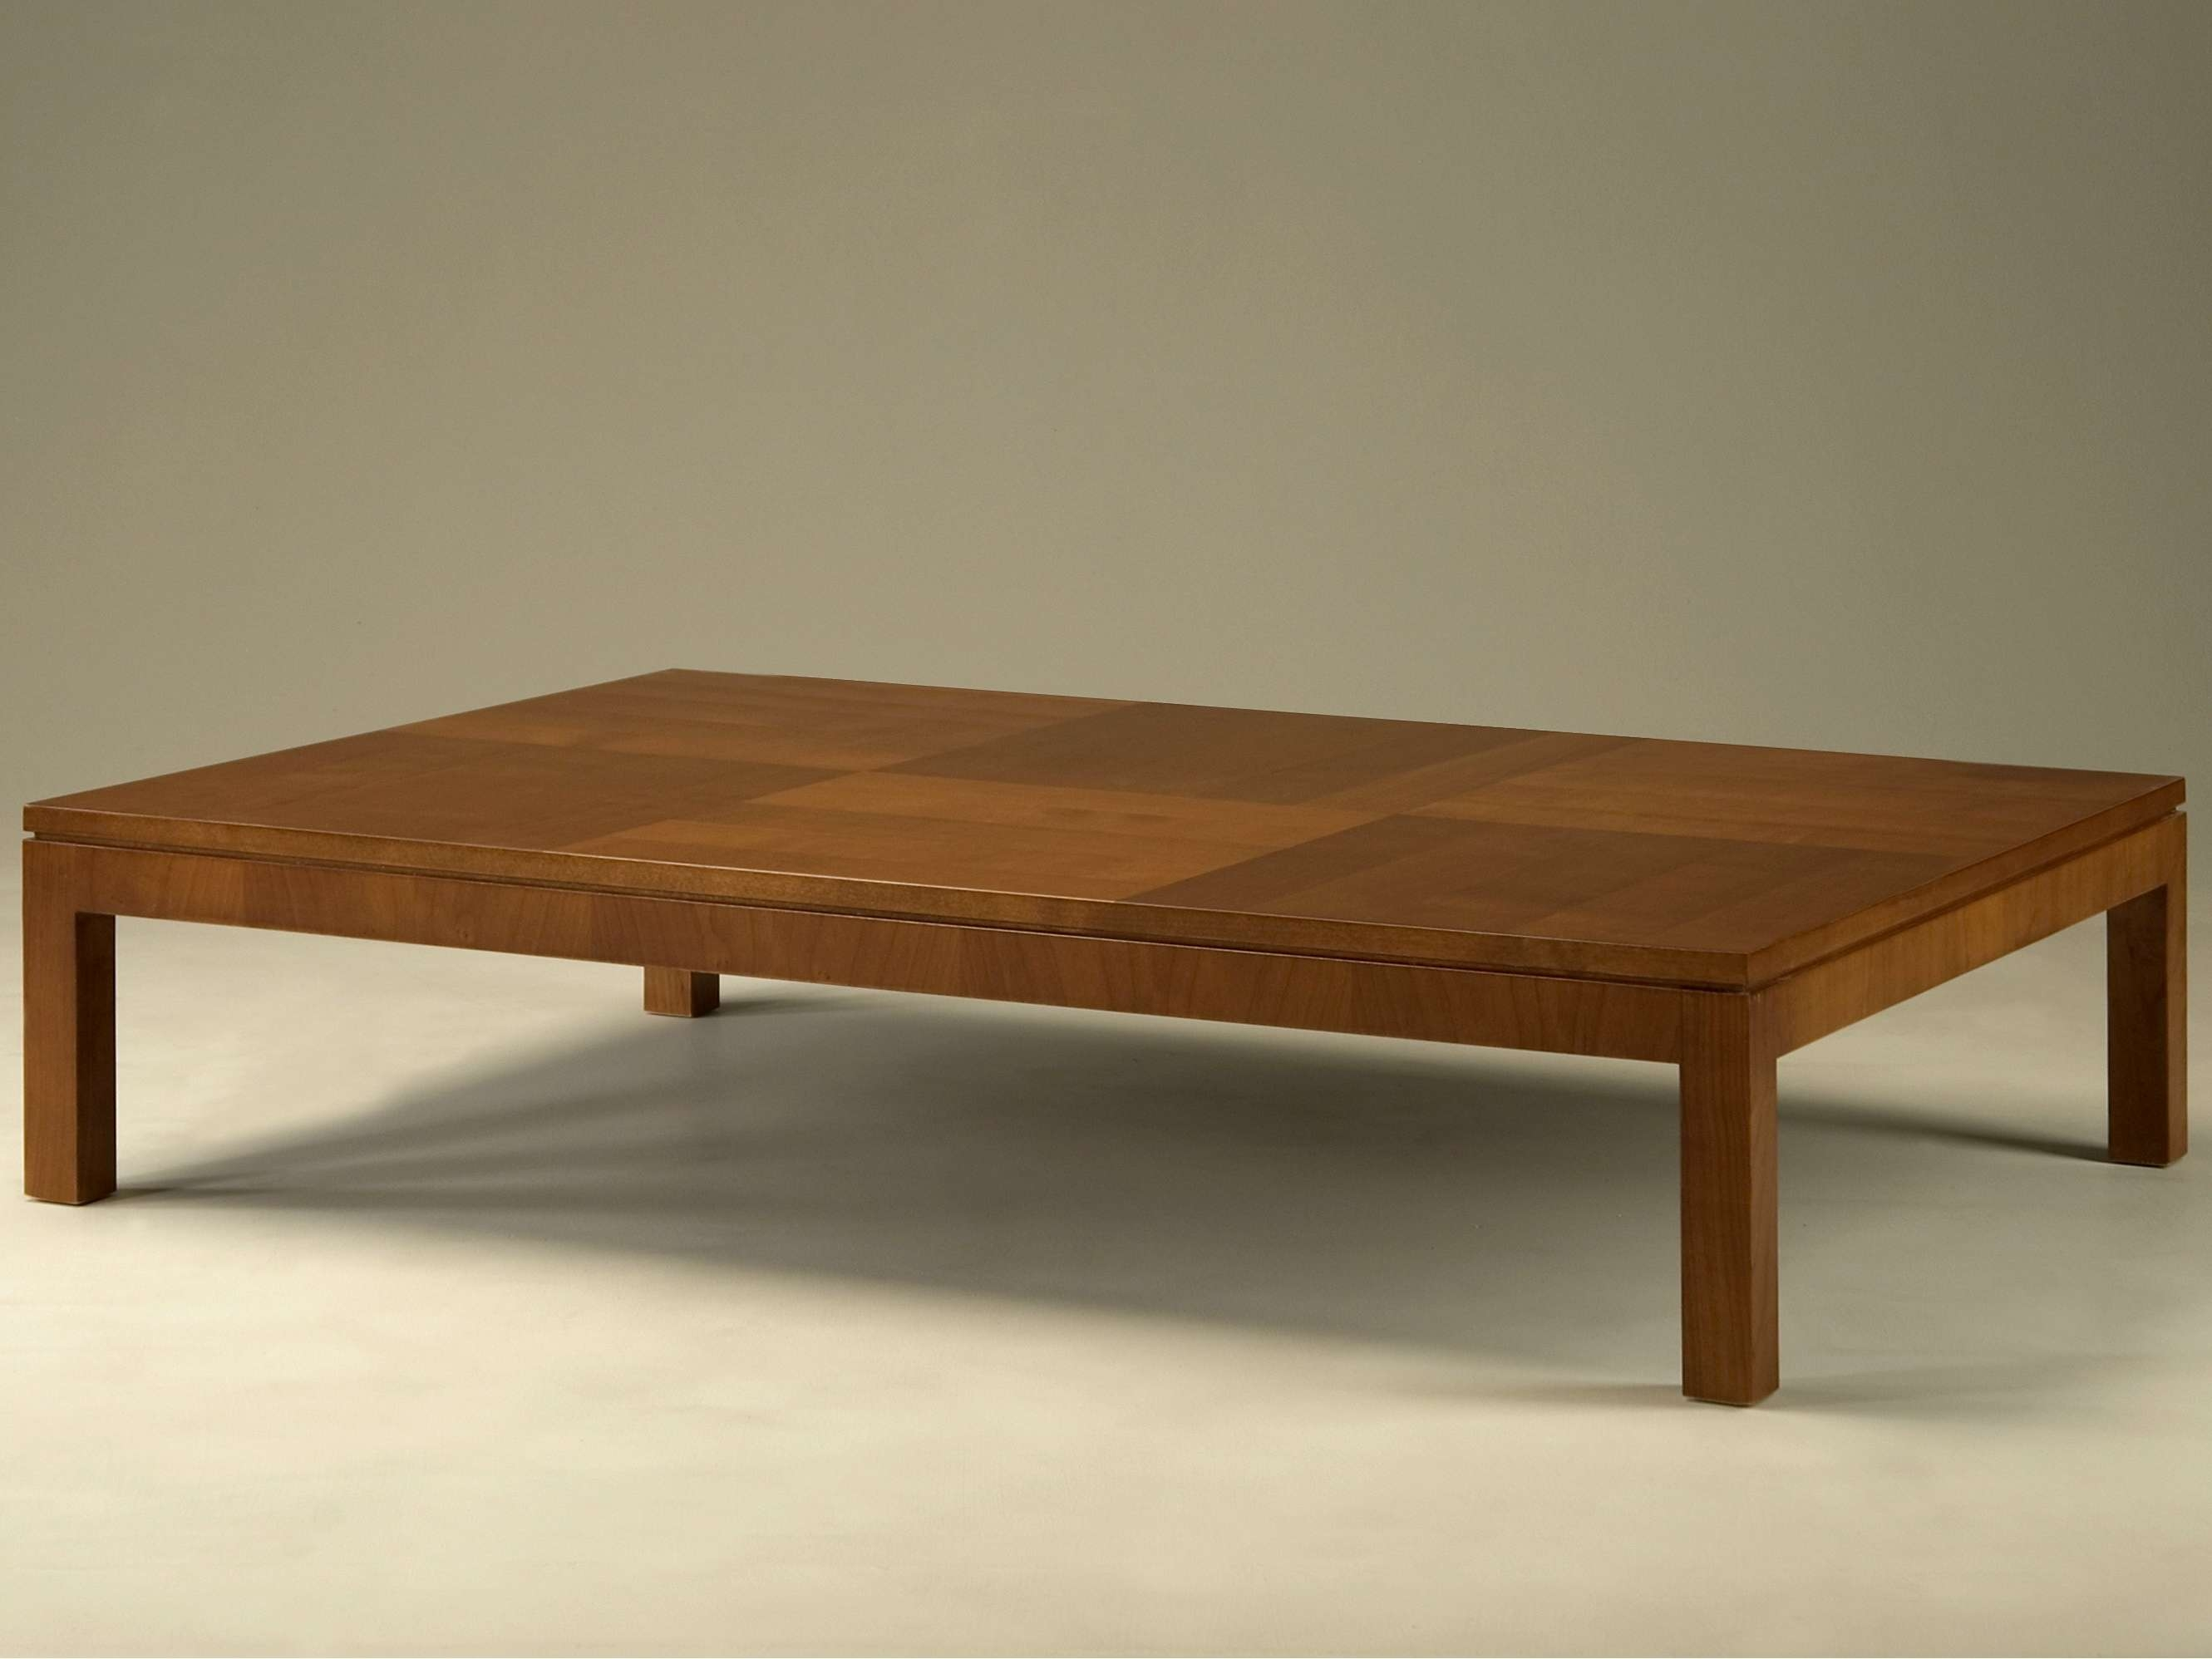 Fashionable Large Low Square Coffee Tables Throughout Coffee Table : Wonderful Square Coffee Table Large Square Coffee (View 4 of 20)